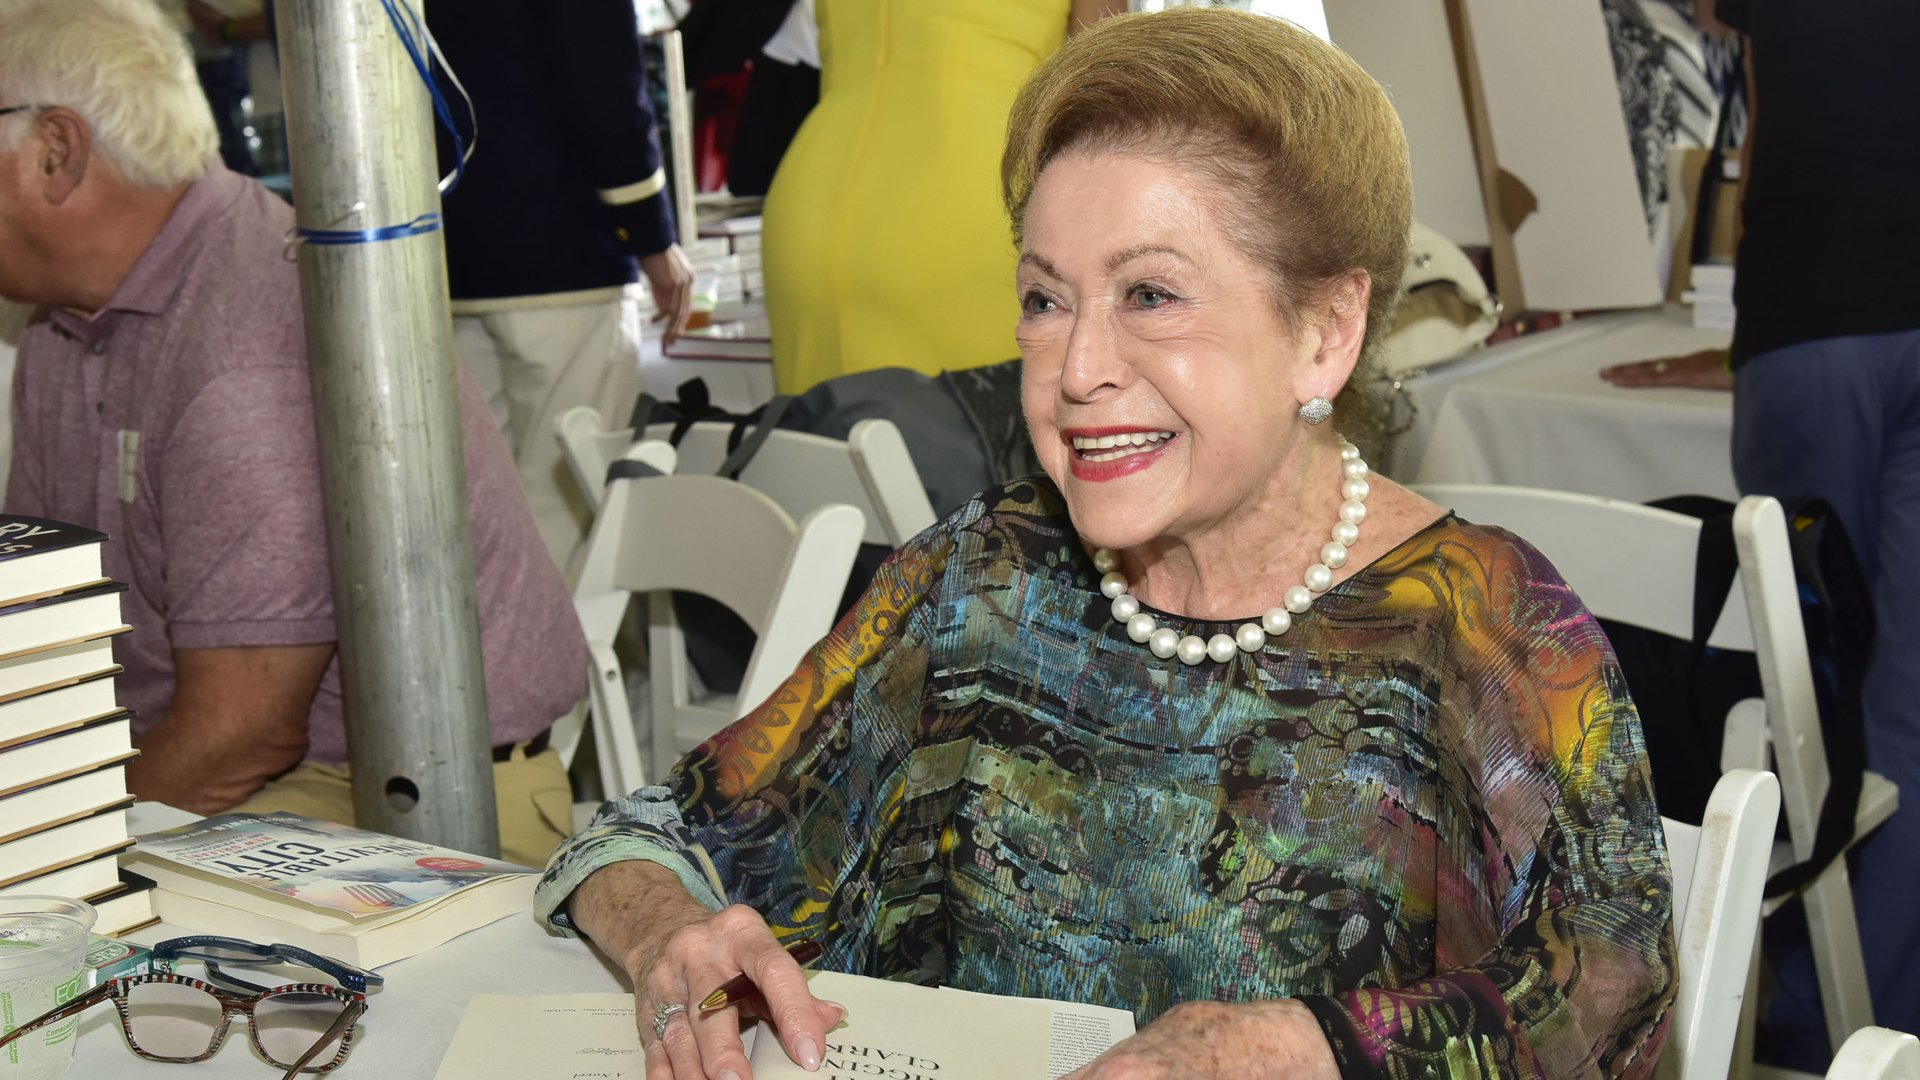 Mary Higgins Clark attends a library event in East Hampton, New York, on Aug. 13, 2016. (Credit: Eugene Gologursky / Getty Images for East Hampton Library)